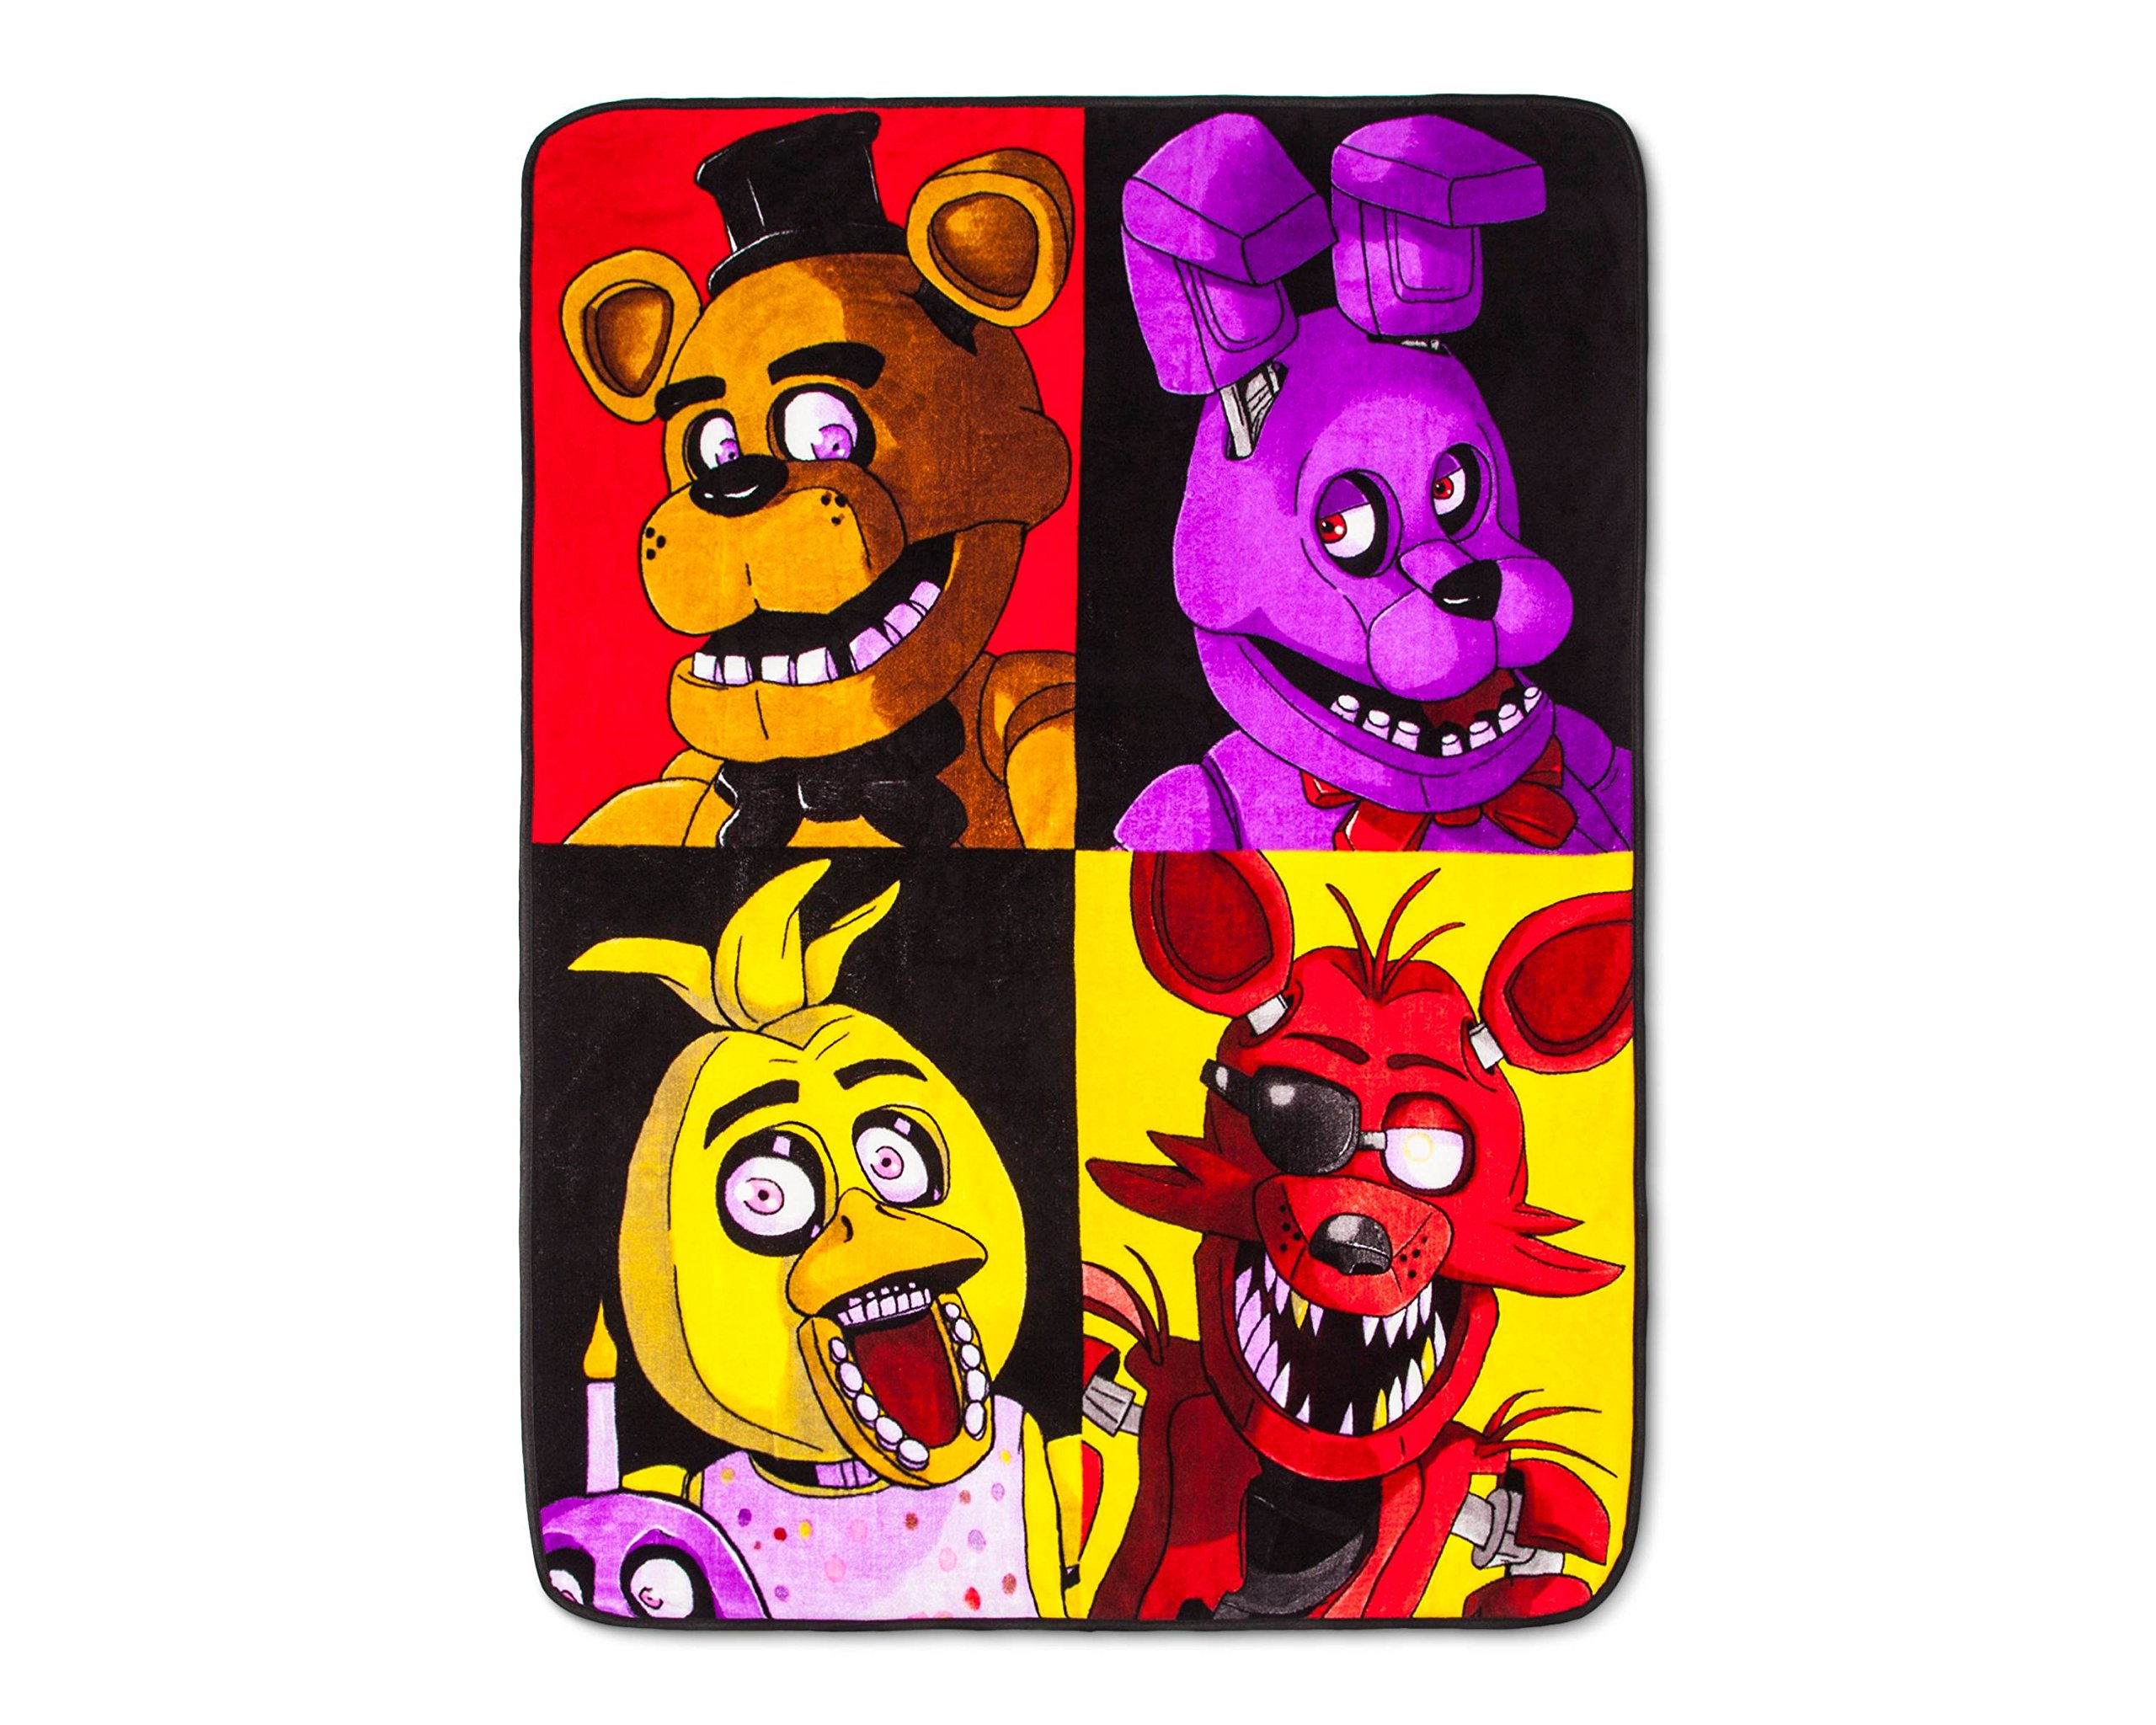 Five Nights at Freddy's Twin Comforter and Sheet Set with Throw